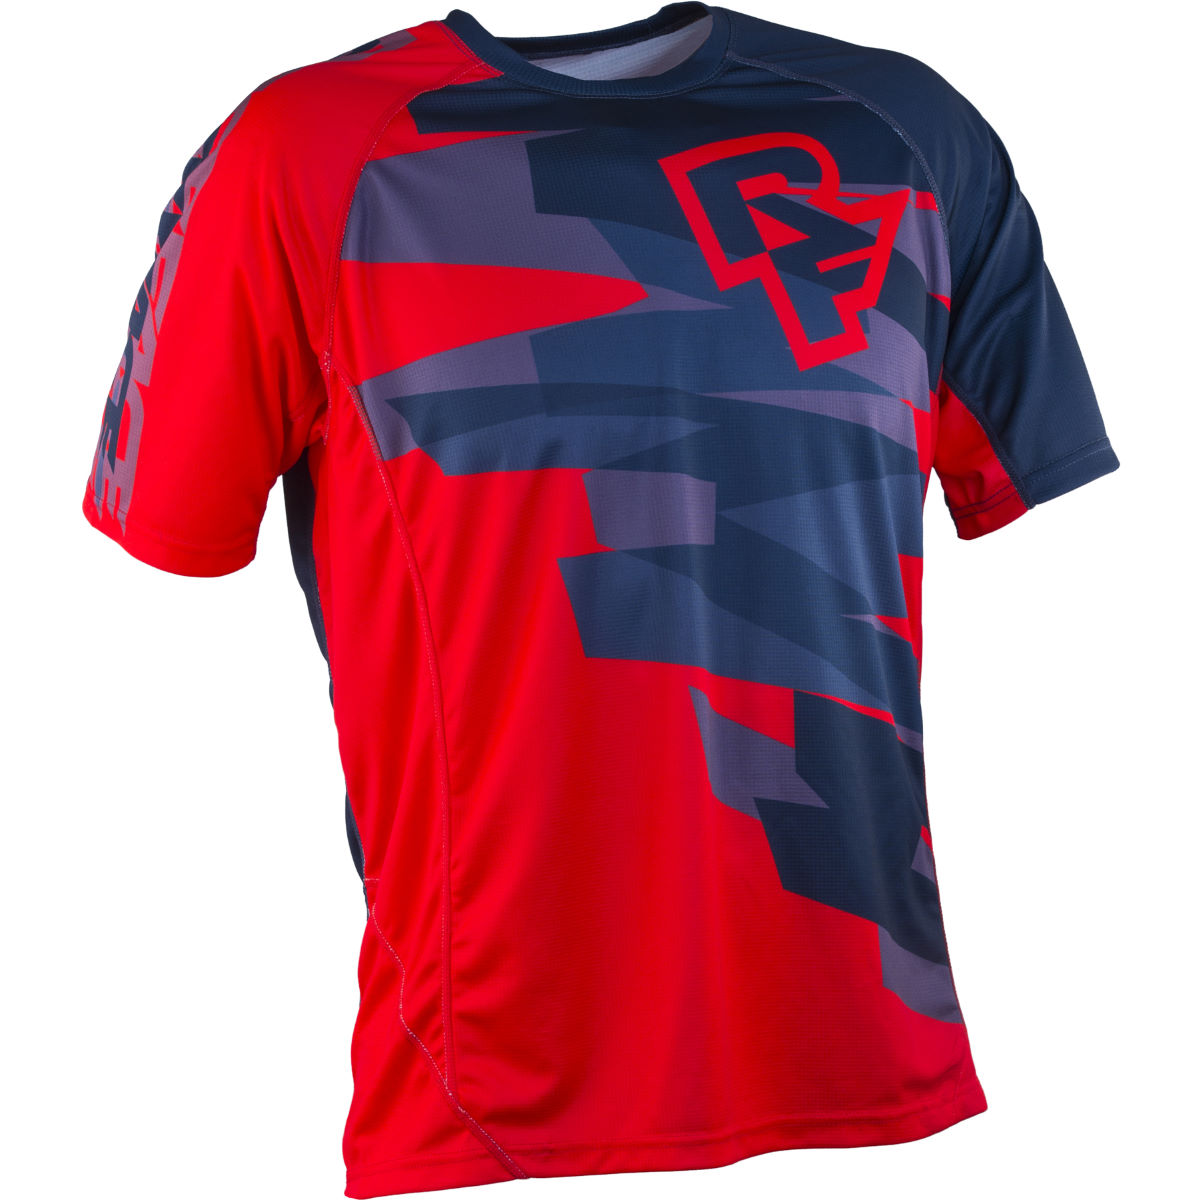 Maillot Race Face Indy (manches courtes, PE16) - S Rouge Maillots